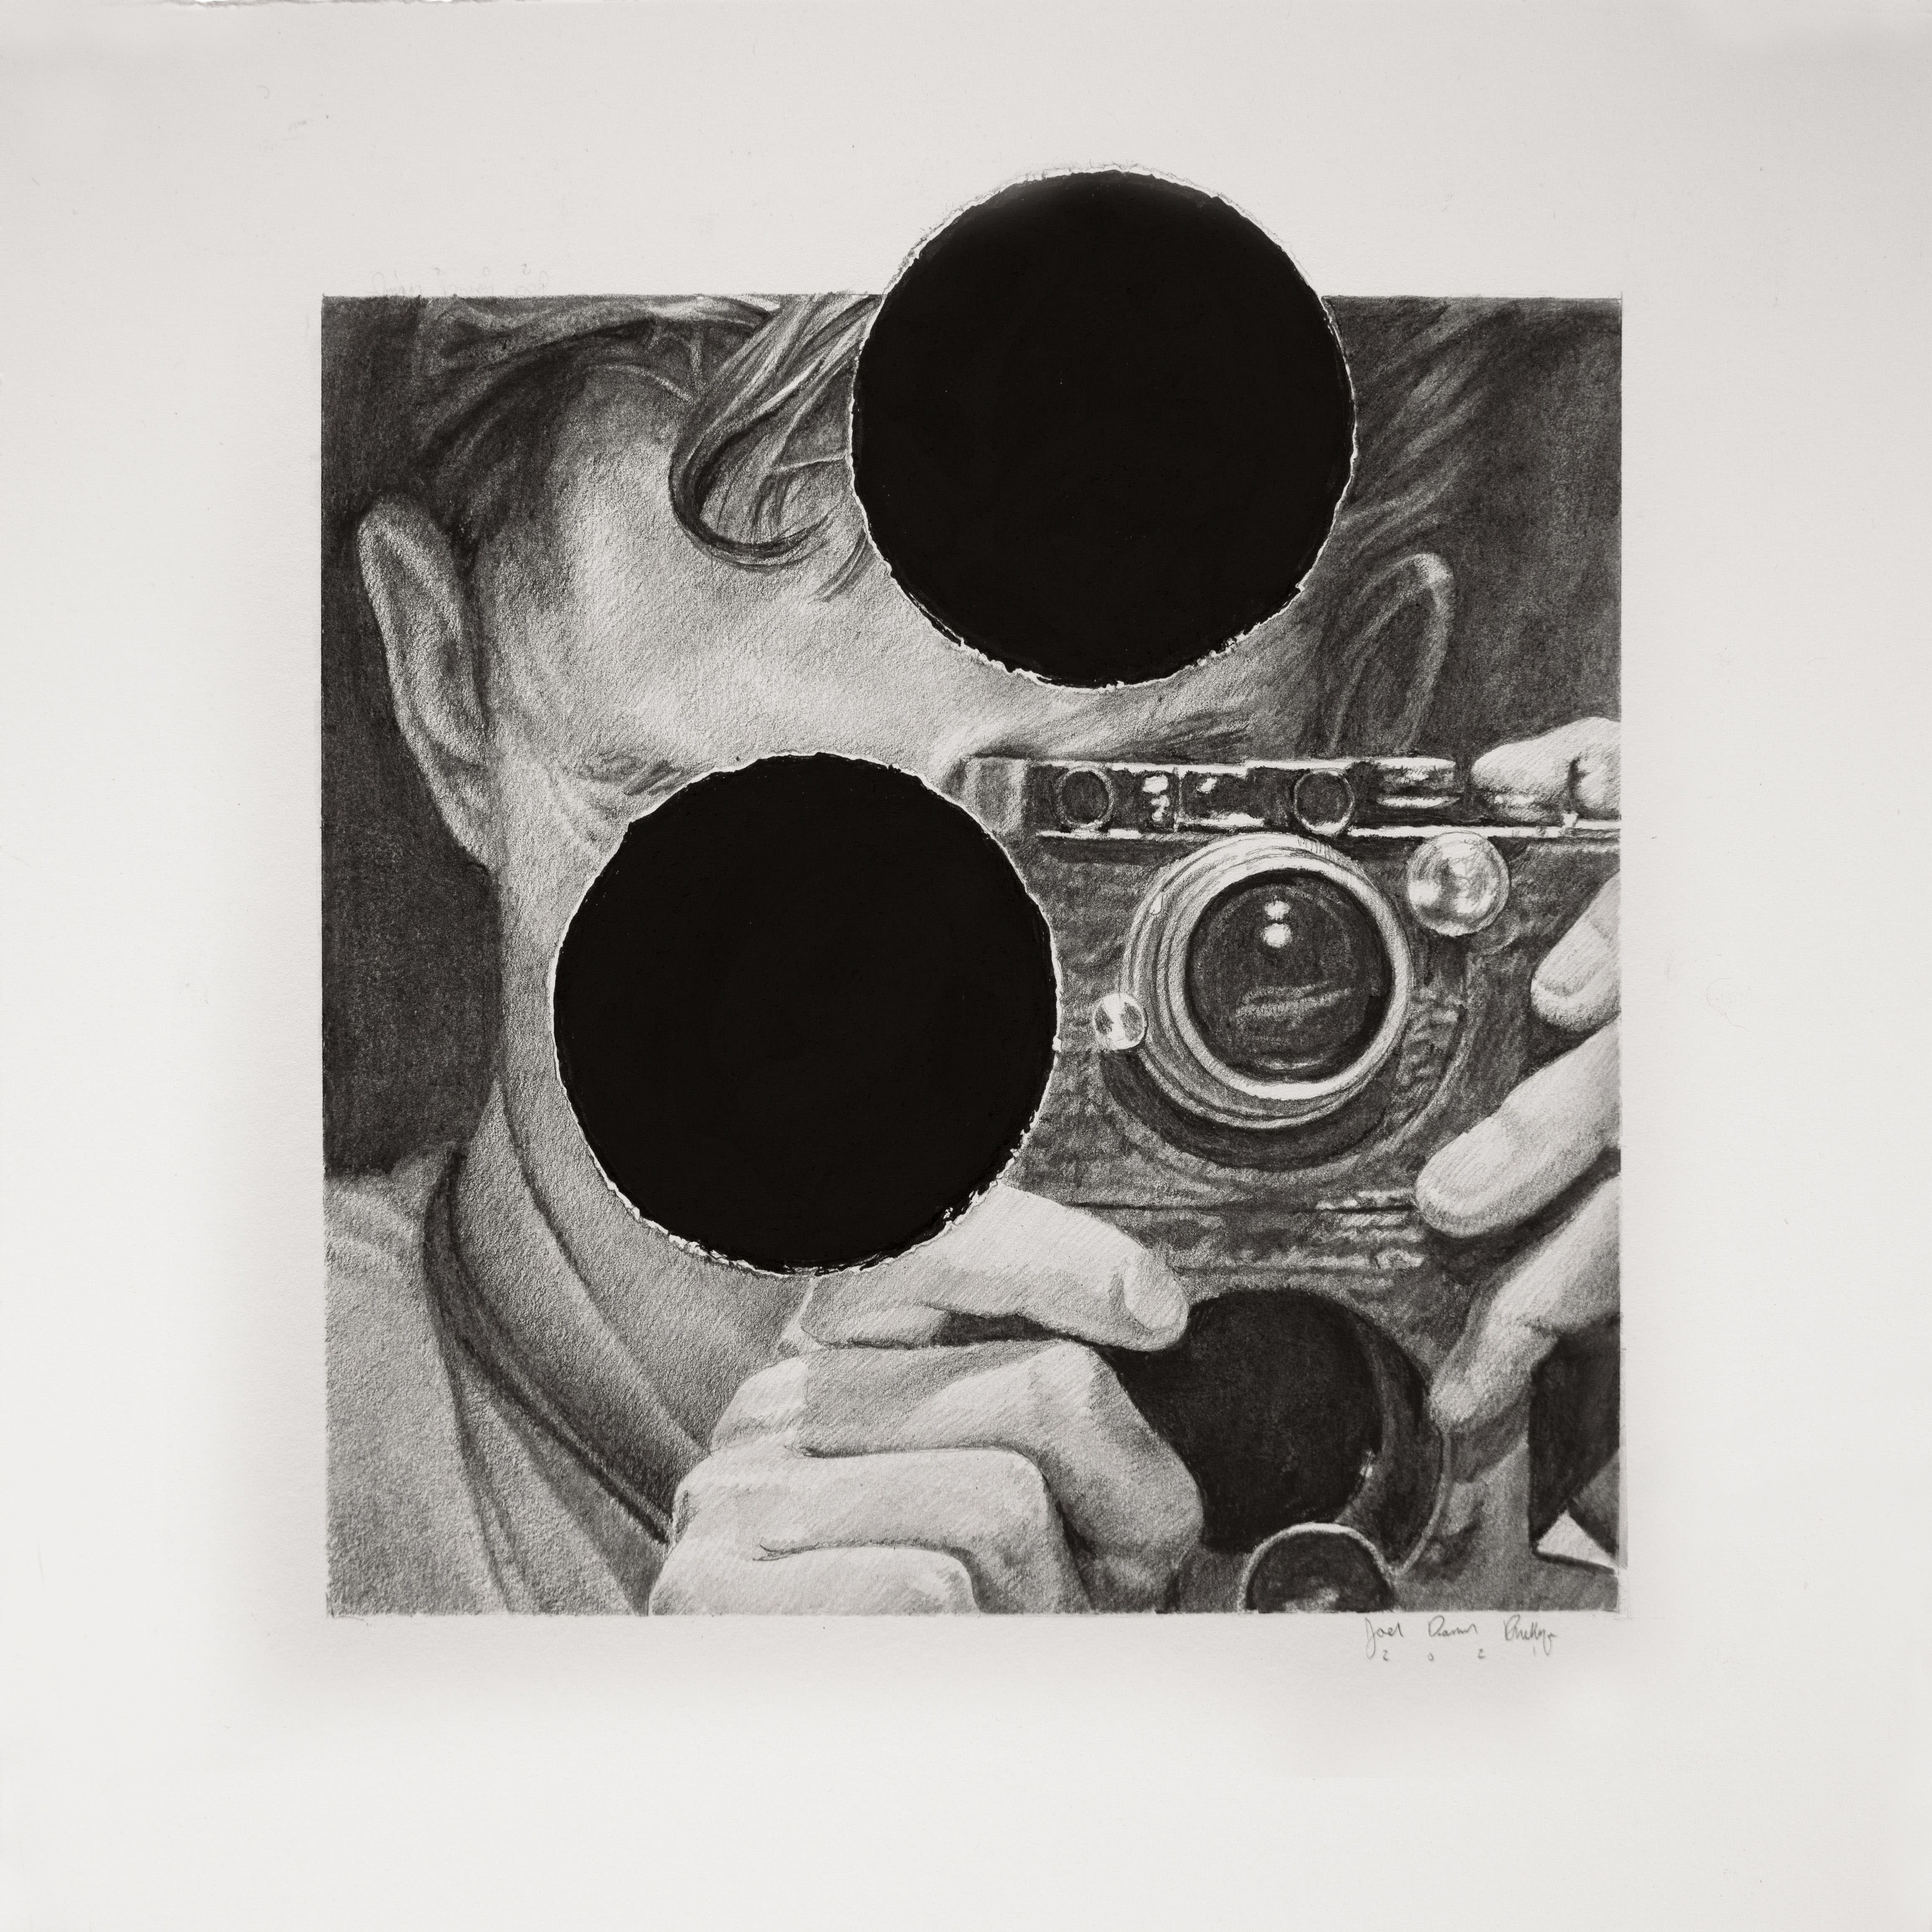 Joel Daniel Phillips graphite drawing of man with camera obscured with hole punch